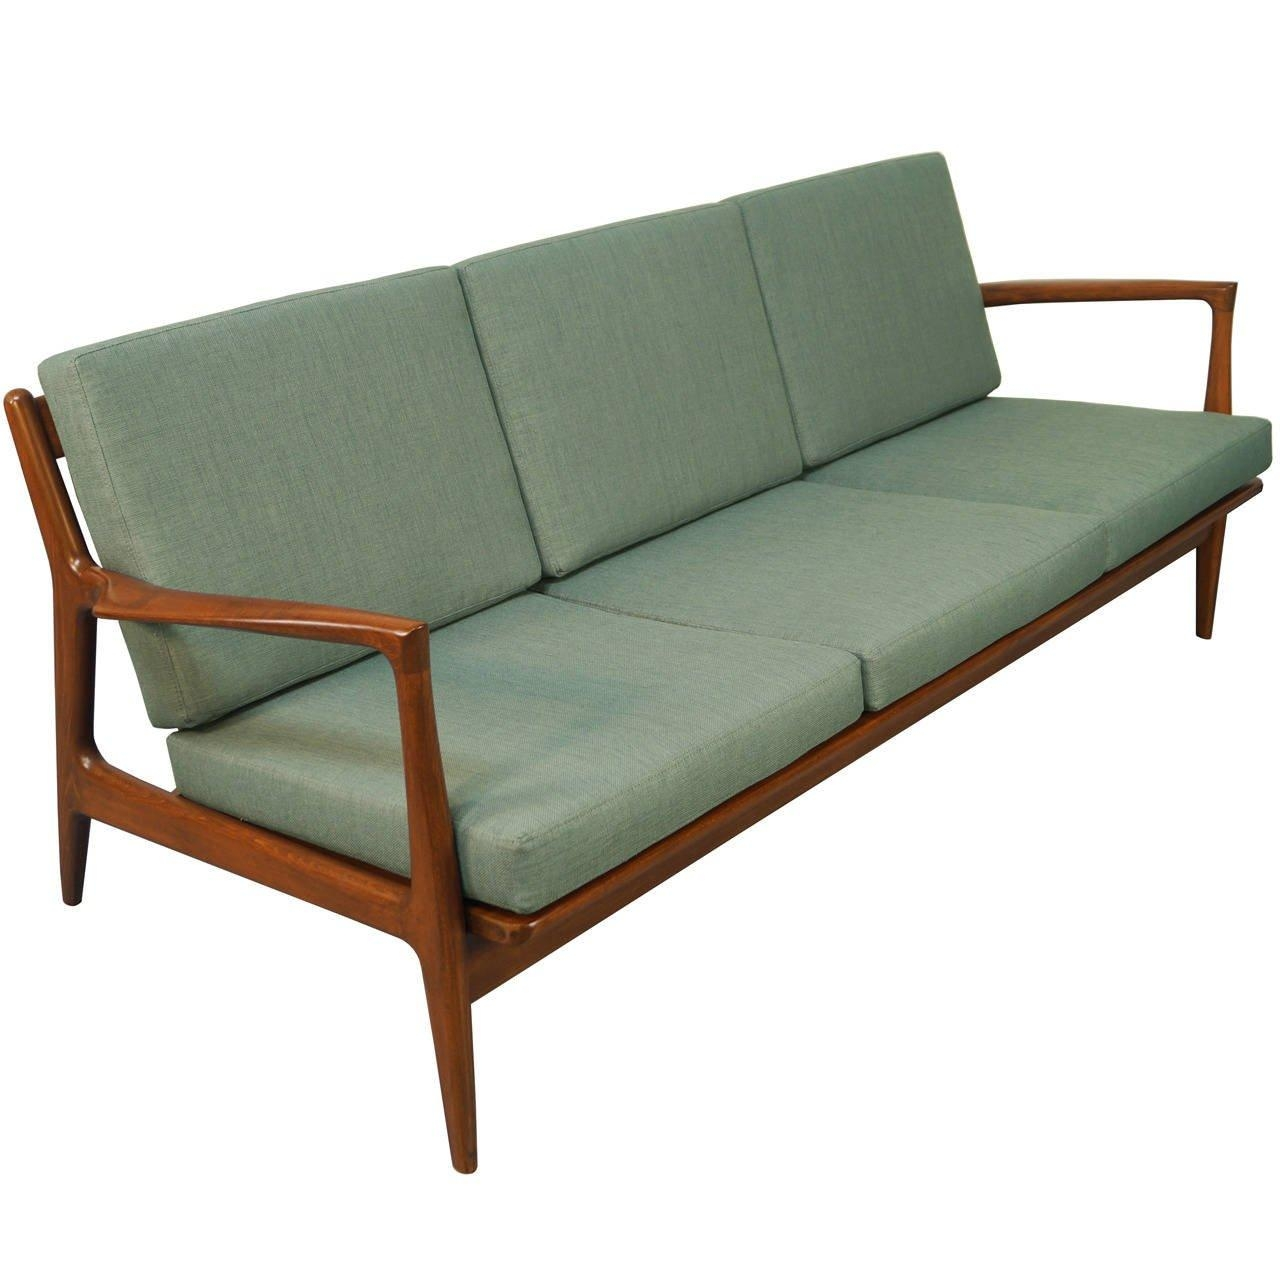 Danish Modern Sofaib Kofod Larsen At 1Stdibs Intended For Modern Danish Sofas (View 3 of 20)